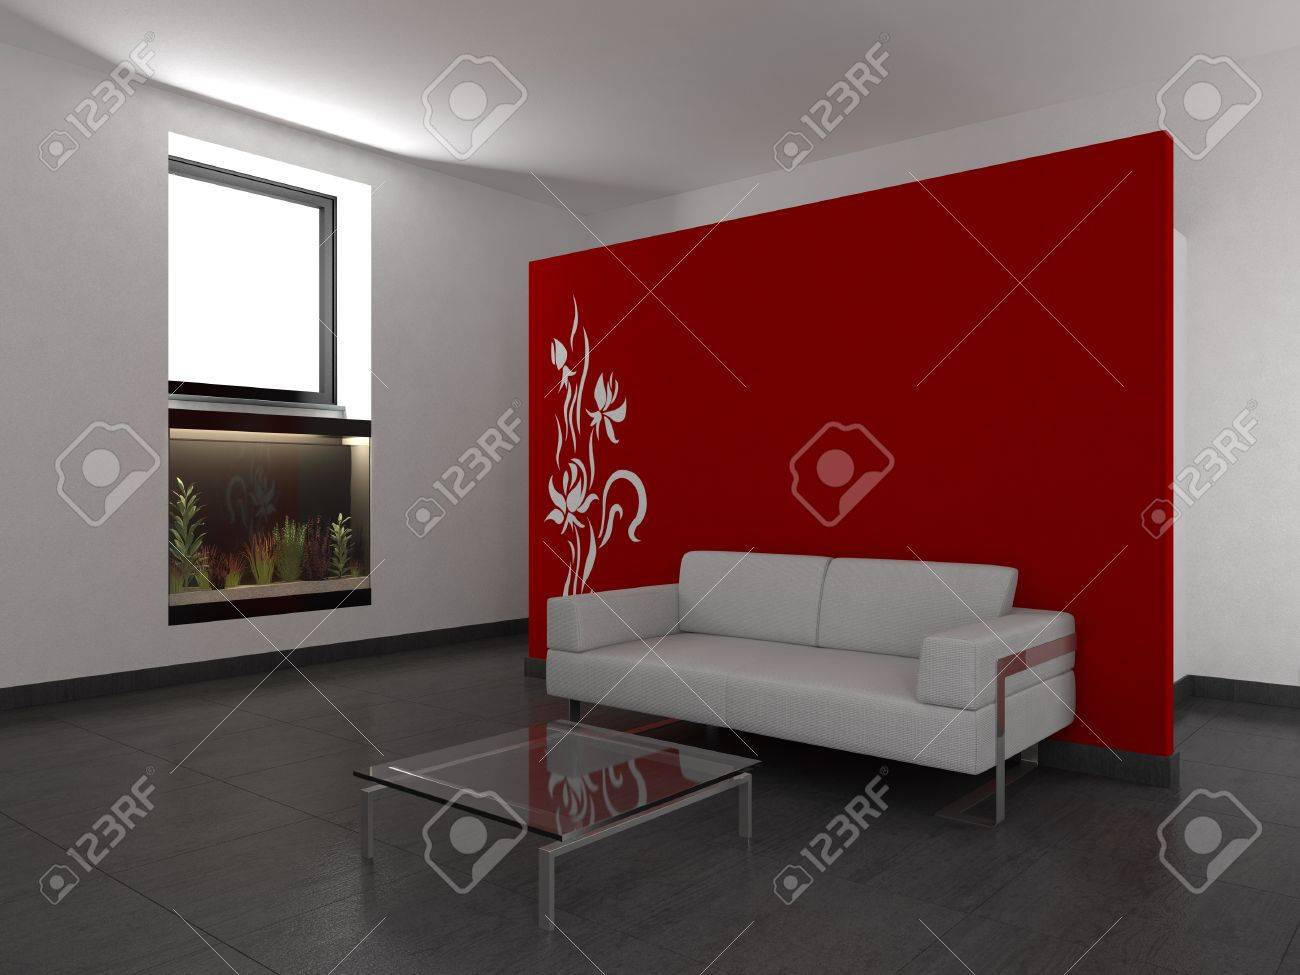 modern living room with red wall stock photo, picture and royalty